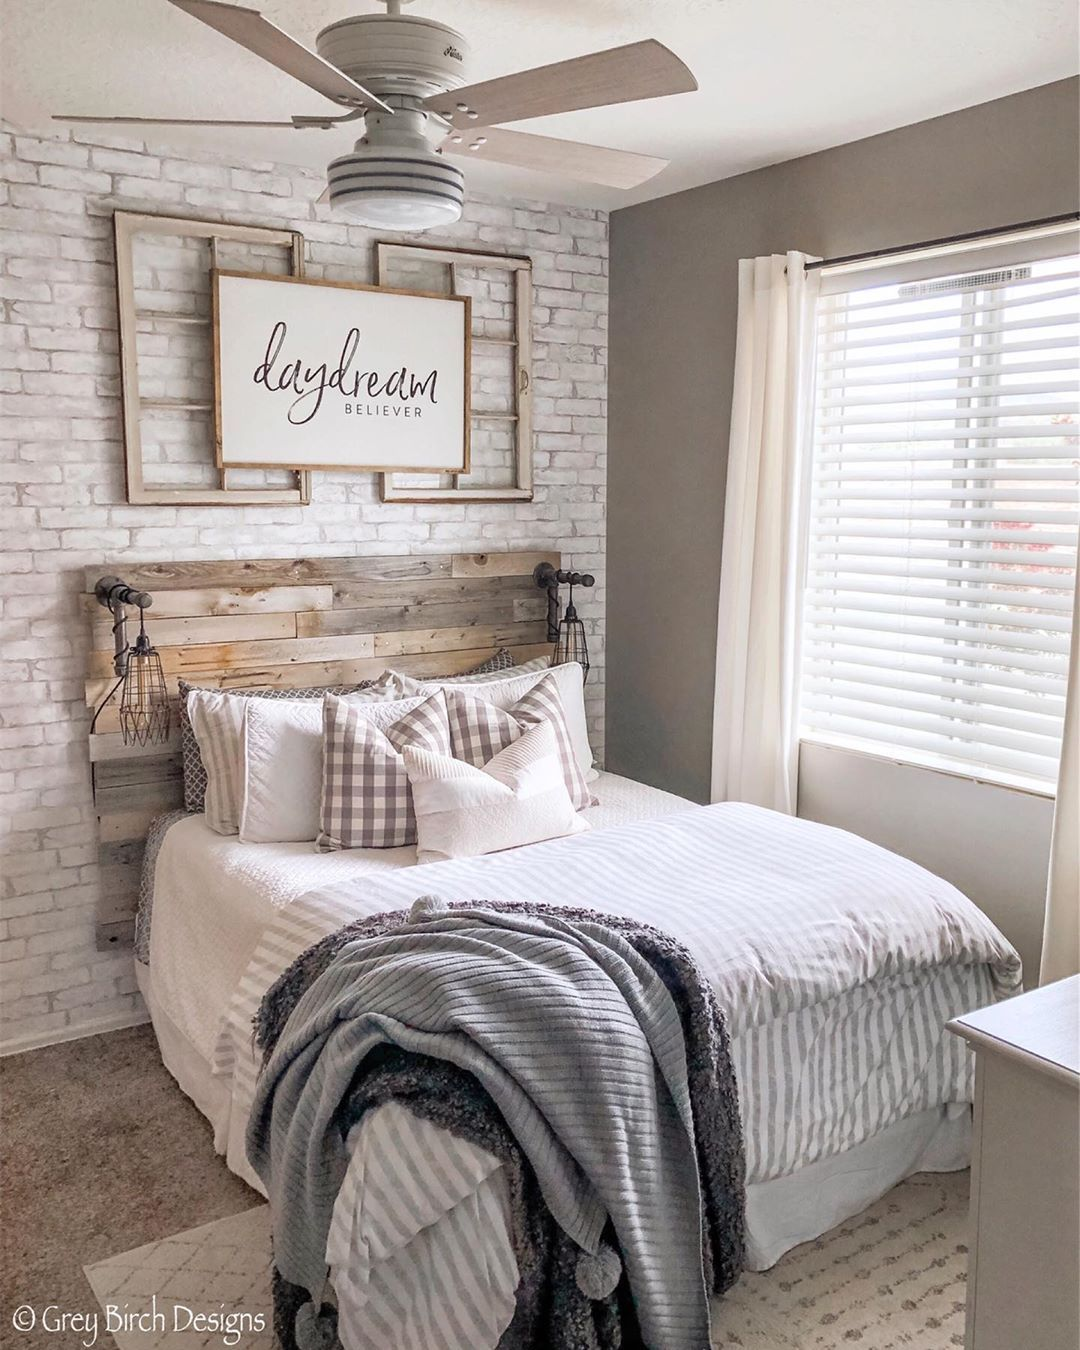 I'm so excited to finally get rid of that ugly builder grade light we had in here and replace it with this beautiful @hunterfanco fan. It… #modernfarmhousebedroom